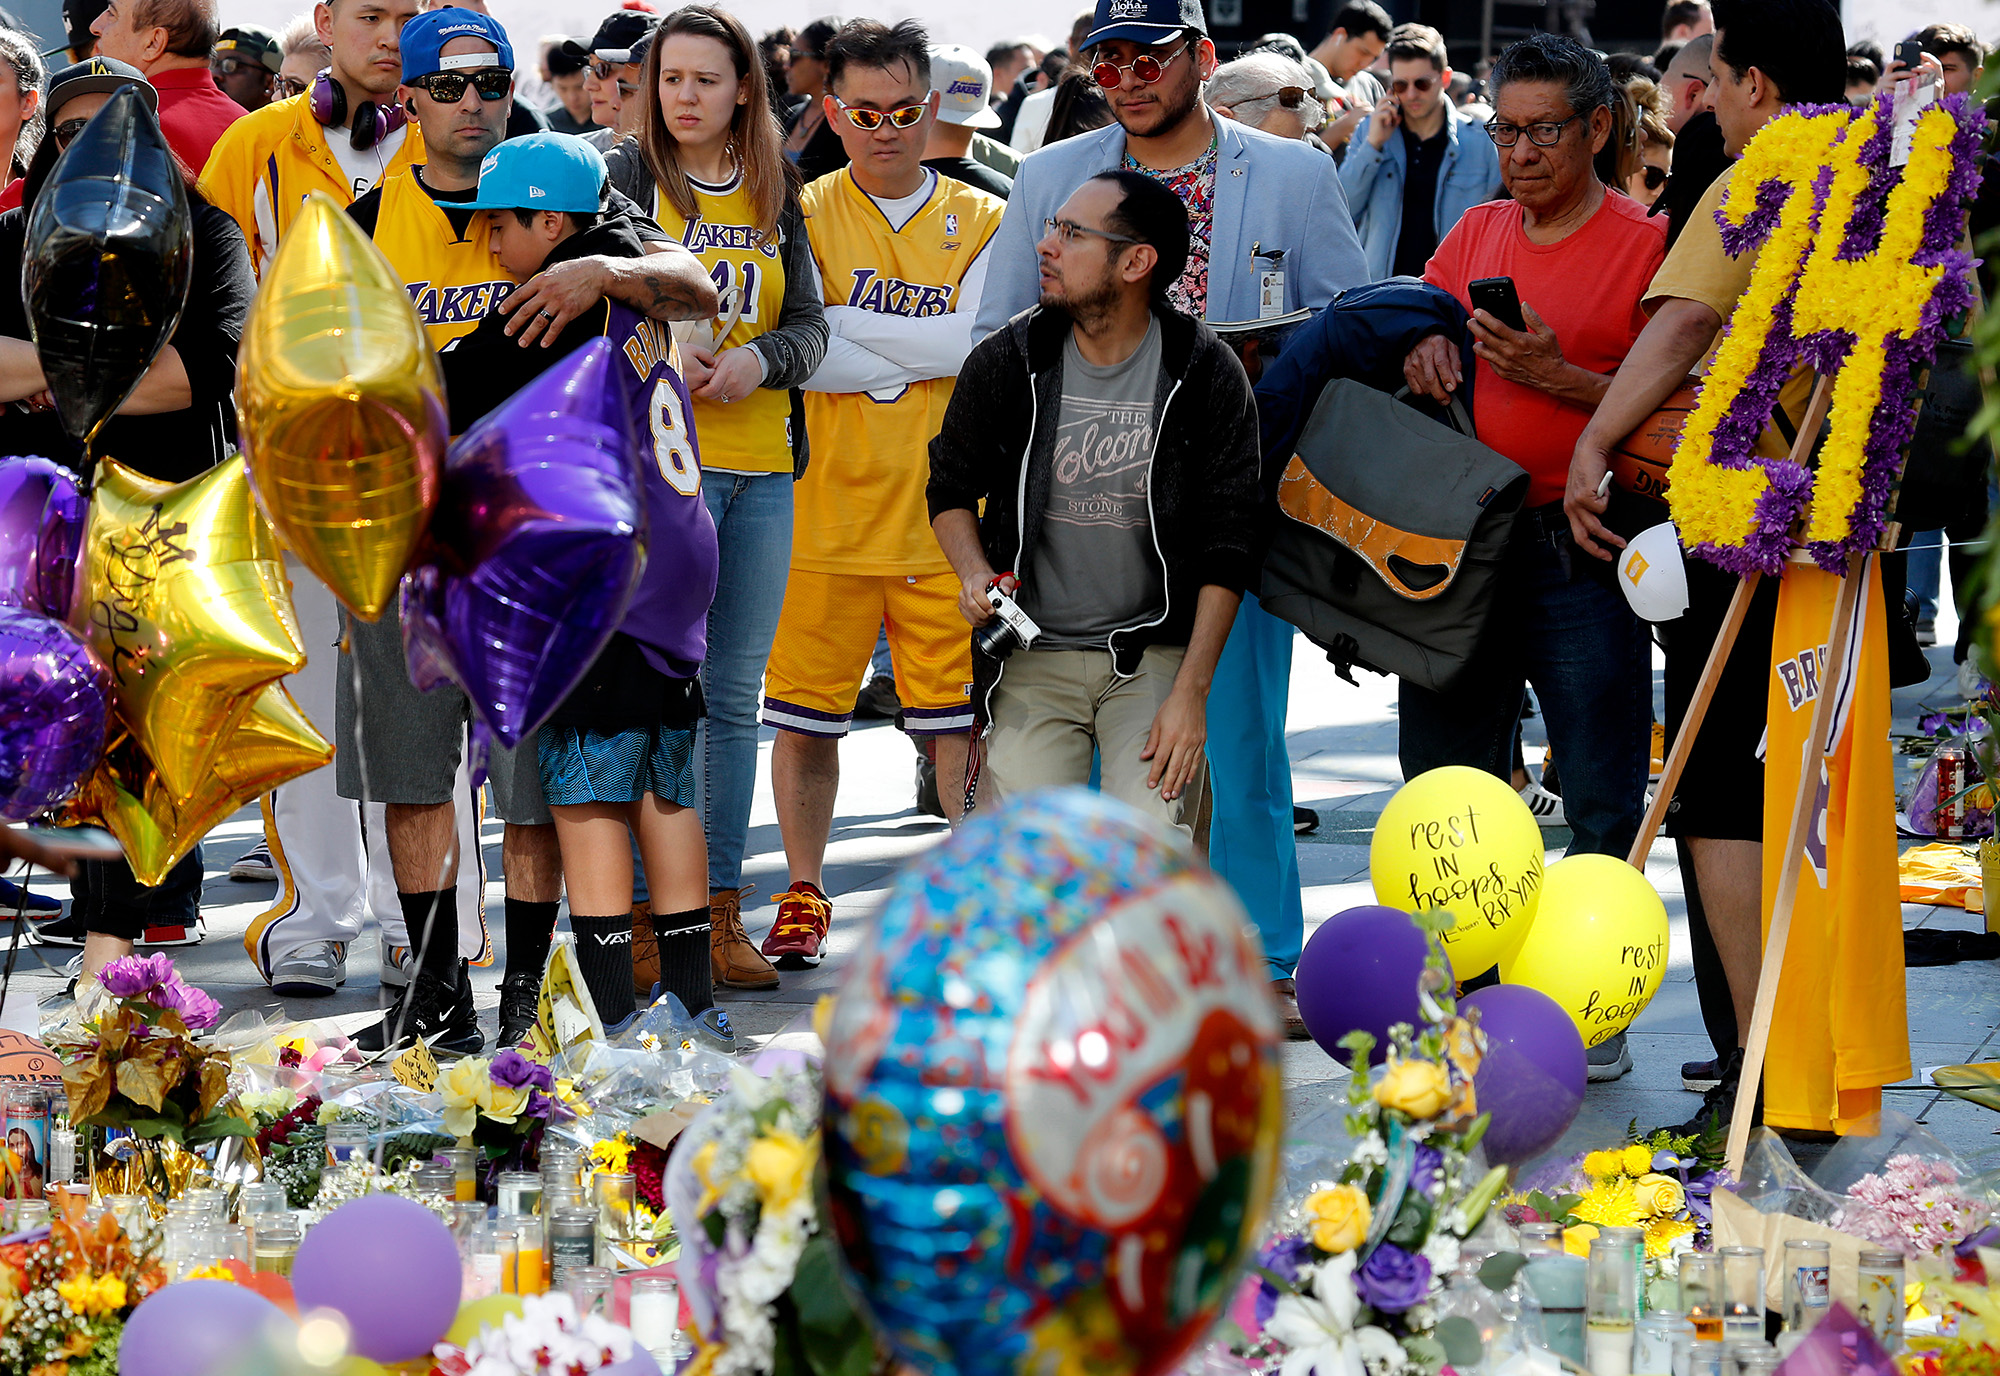 All bodies recovered from Kobe Bryant copter crash site as investigation continues